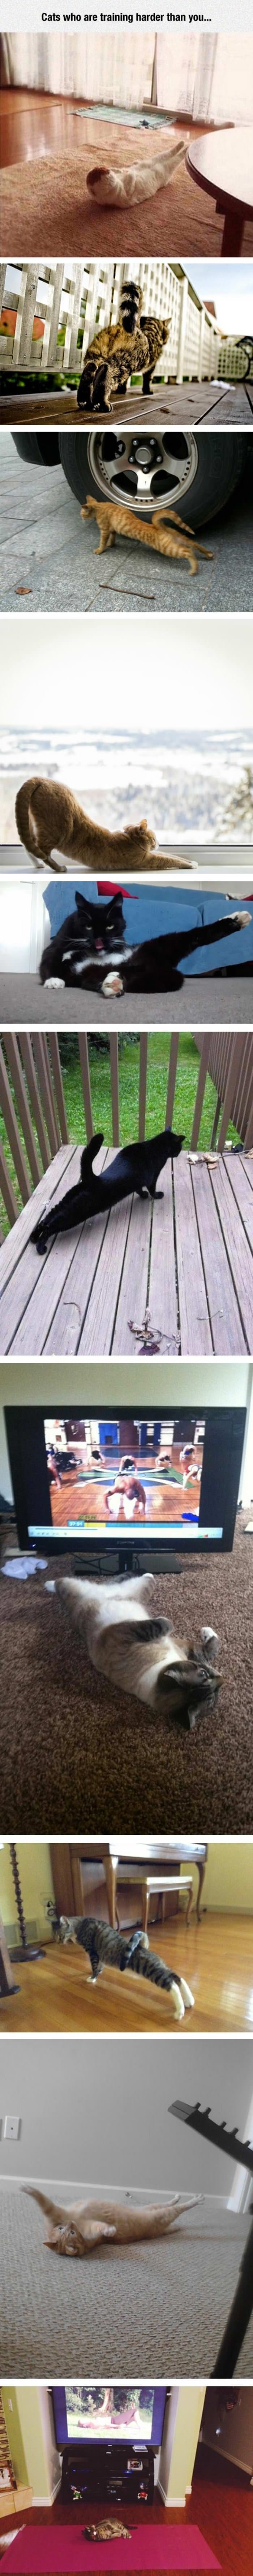 cats that are training hard funny picture